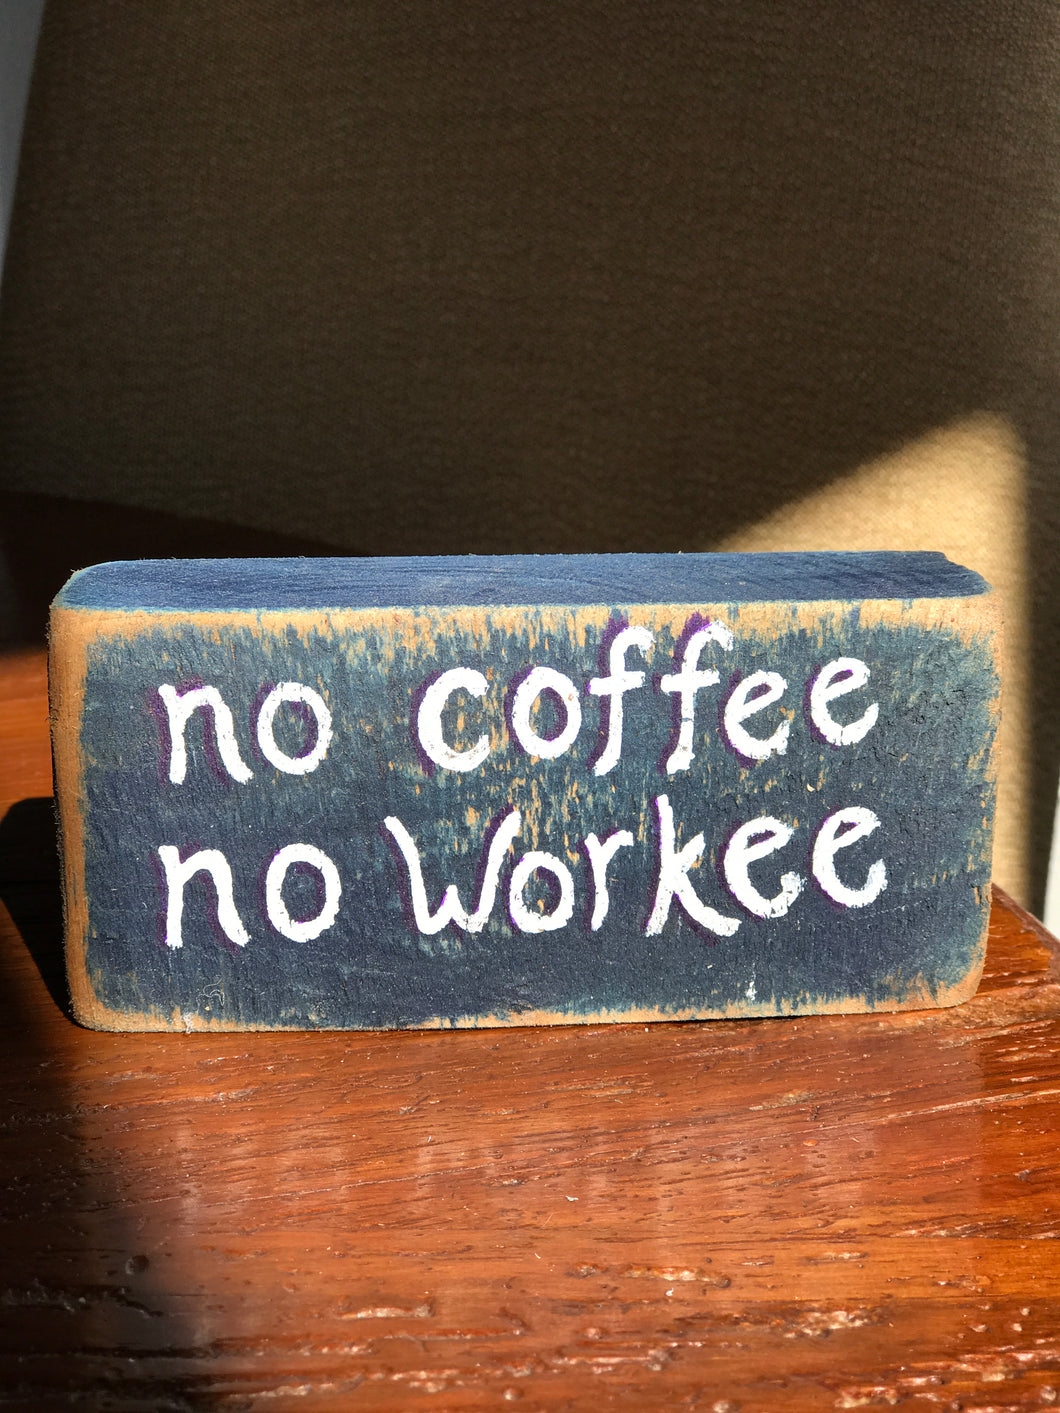 No Coffee No Workee - Upcycled Hand-painted Wood Block